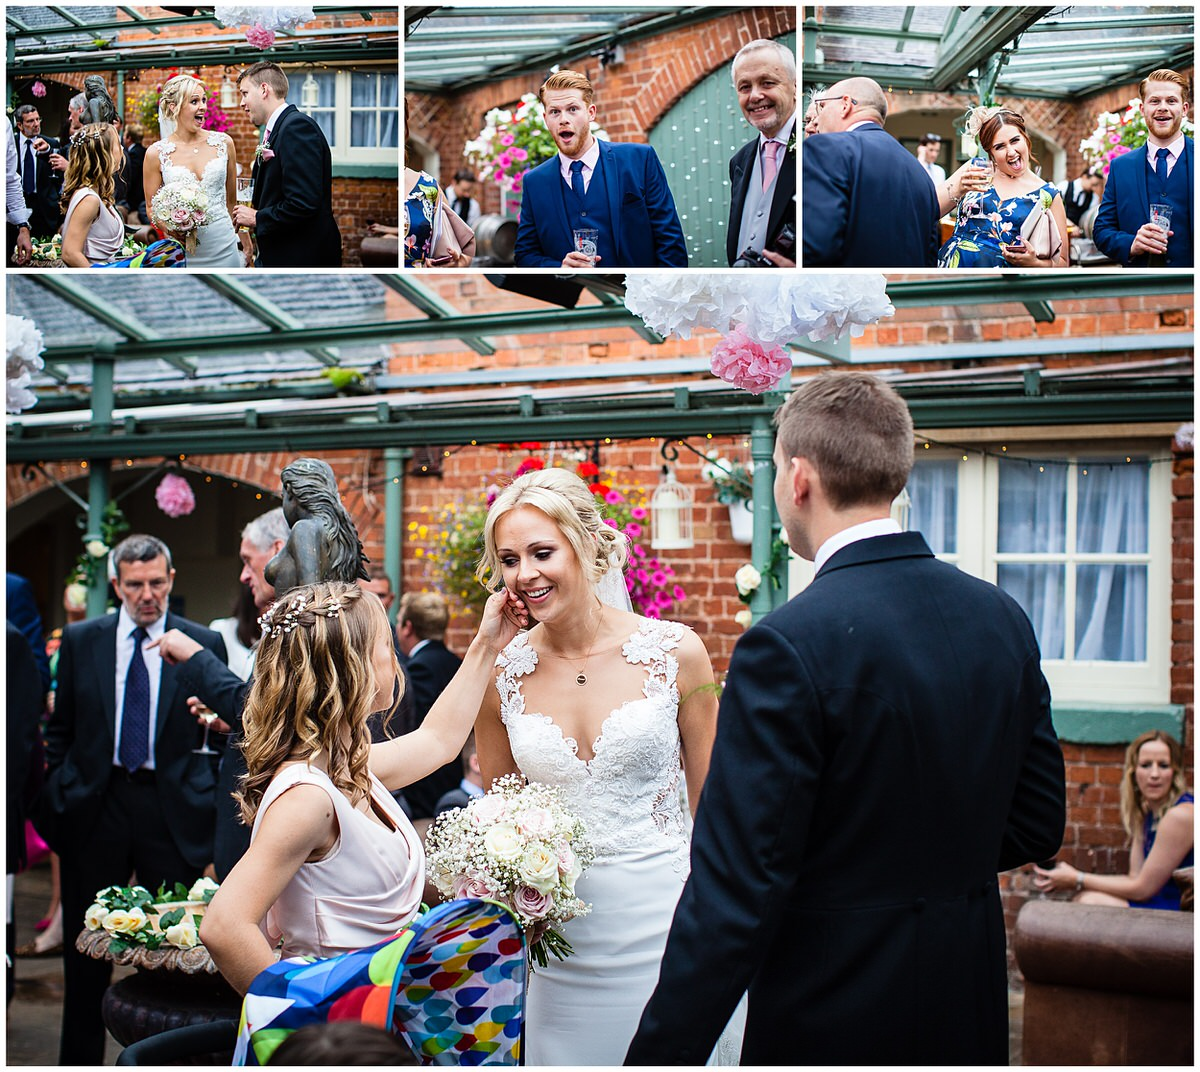 guests having a good time and photo bombing and bridesmaid getting something off brides face